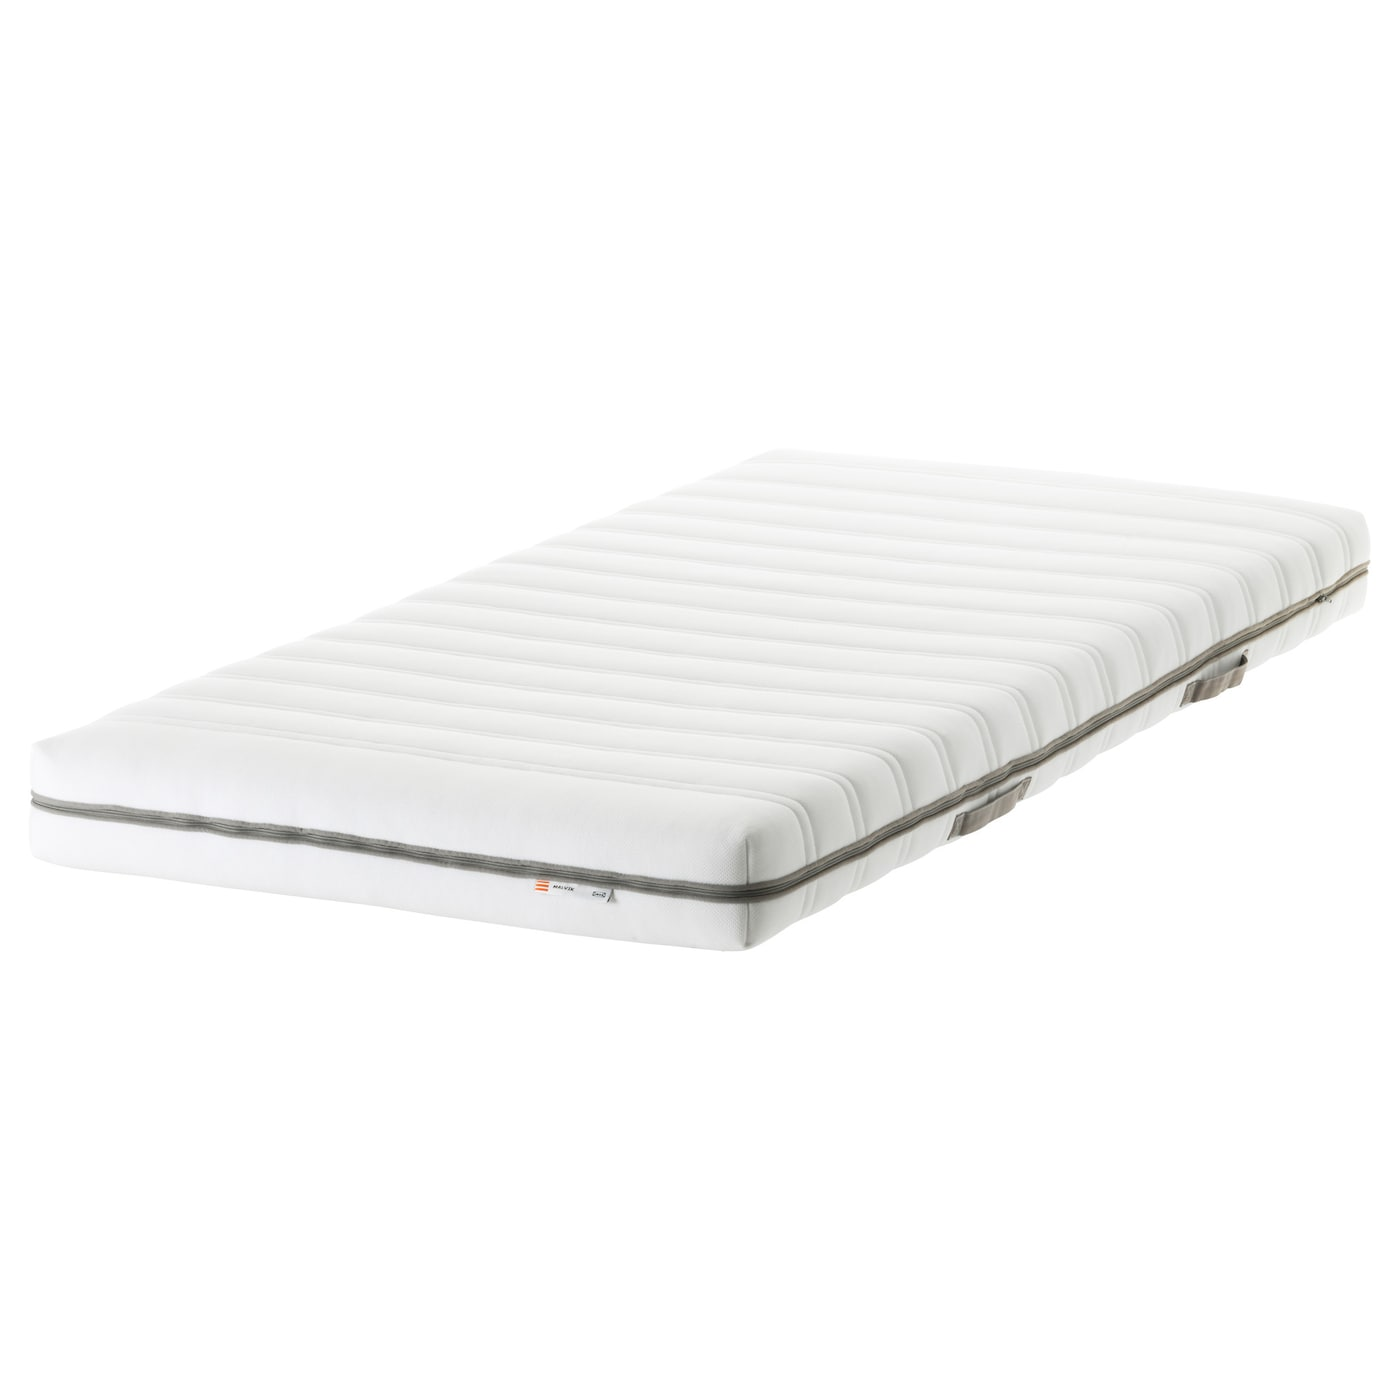 malvik matelas en mousse ferme blanc 90x200 cm ikea. Black Bedroom Furniture Sets. Home Design Ideas